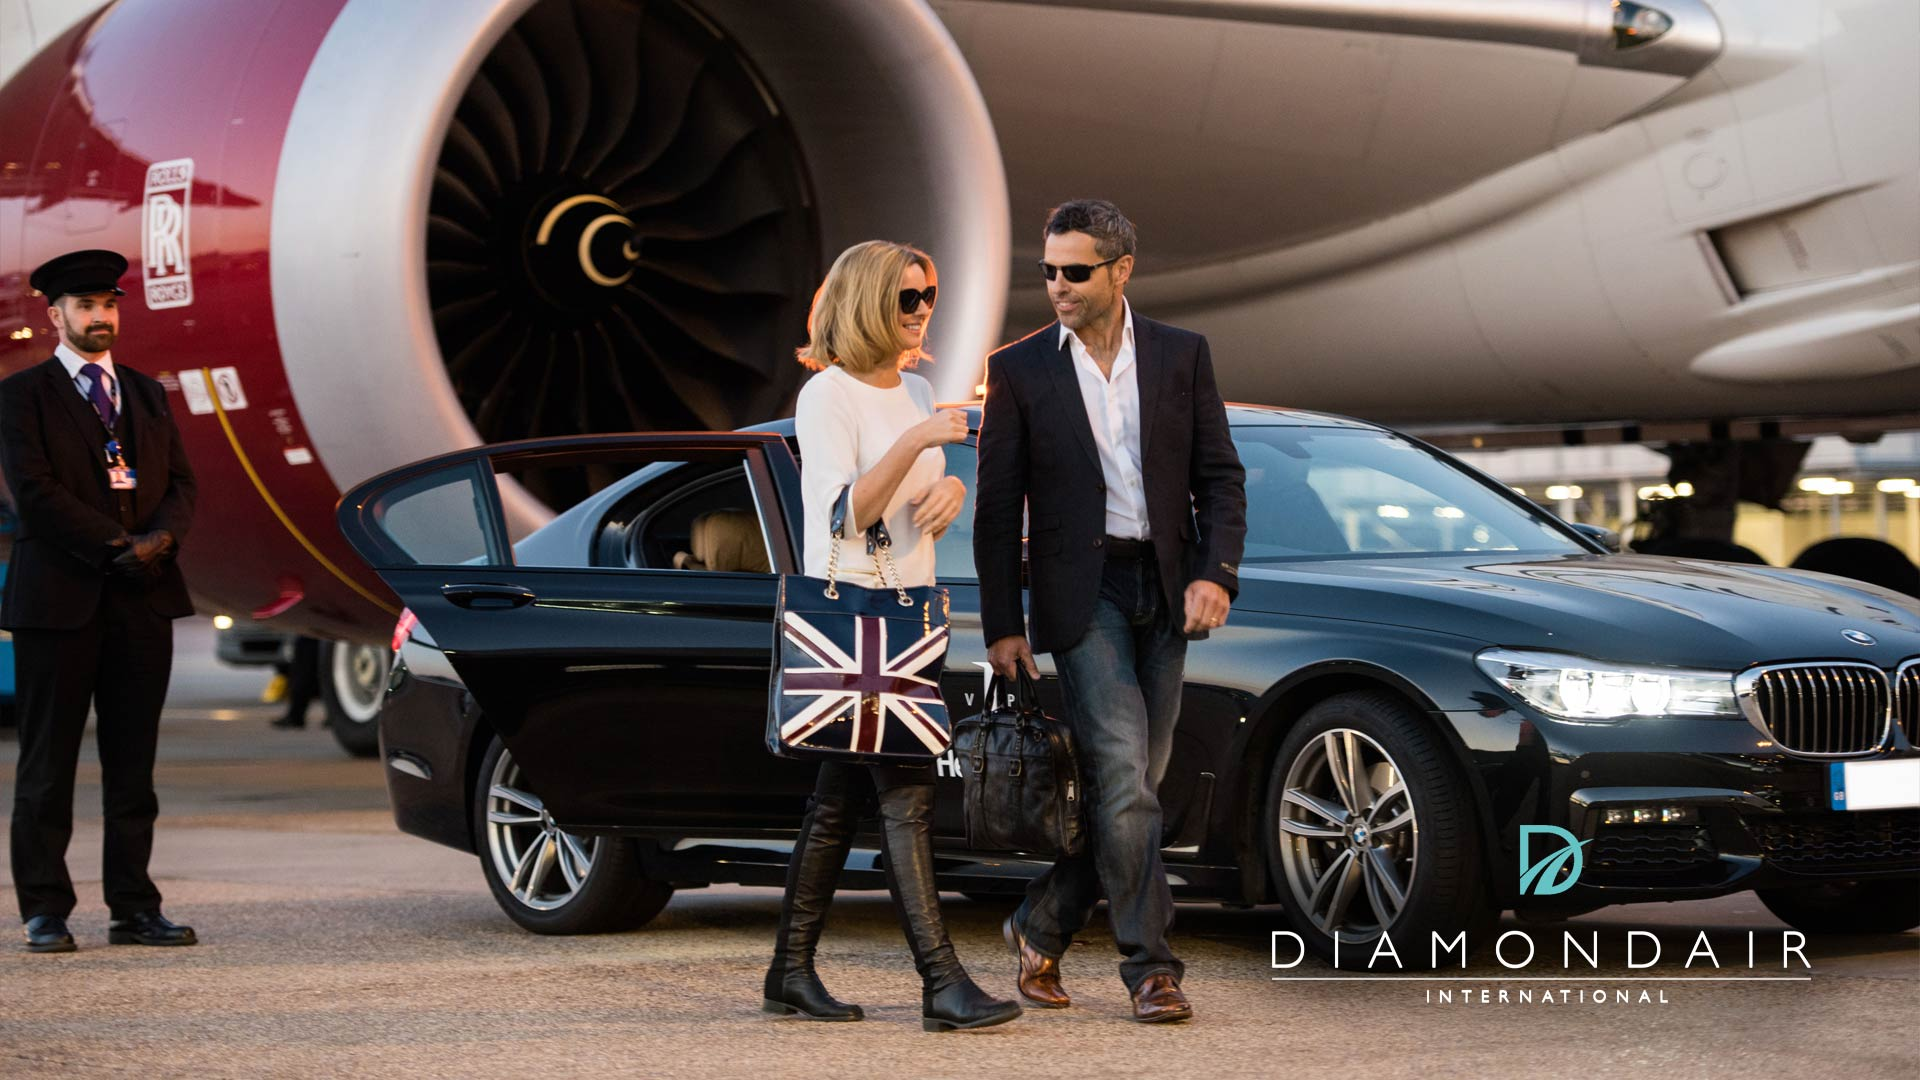 DiamondAir International appoint MBComms new PR firm - image credit DiamondAir International